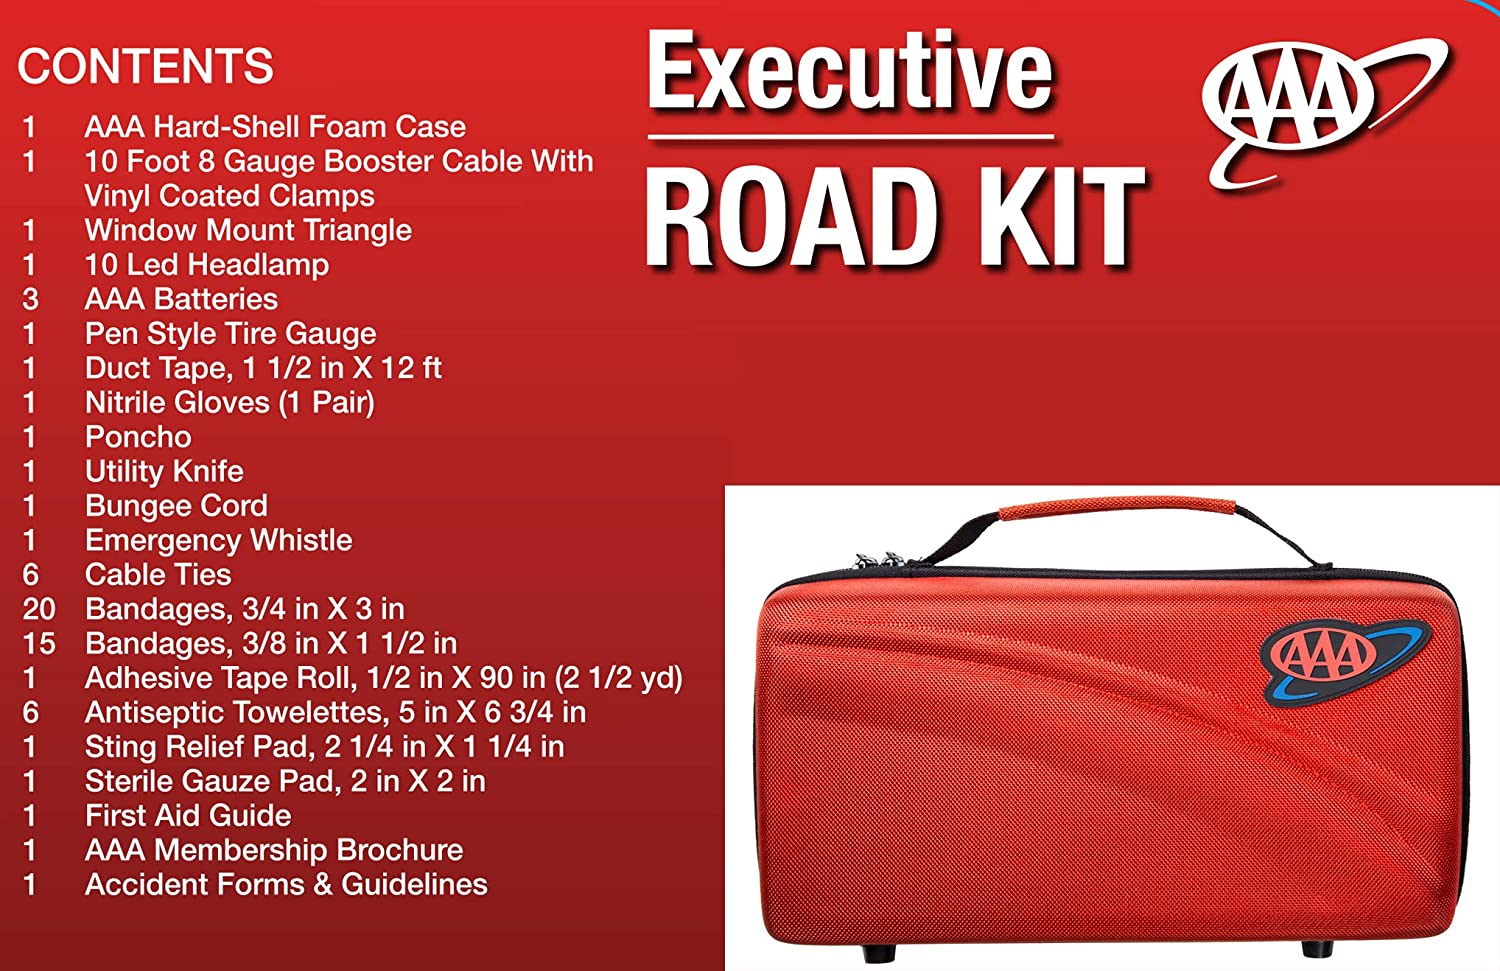 Headlamp Warning Triangle and First Aid Kit Lifeline 4366AAA 67Pc AAA Executive Road 67 Piece Emergency Car Jumper Cables